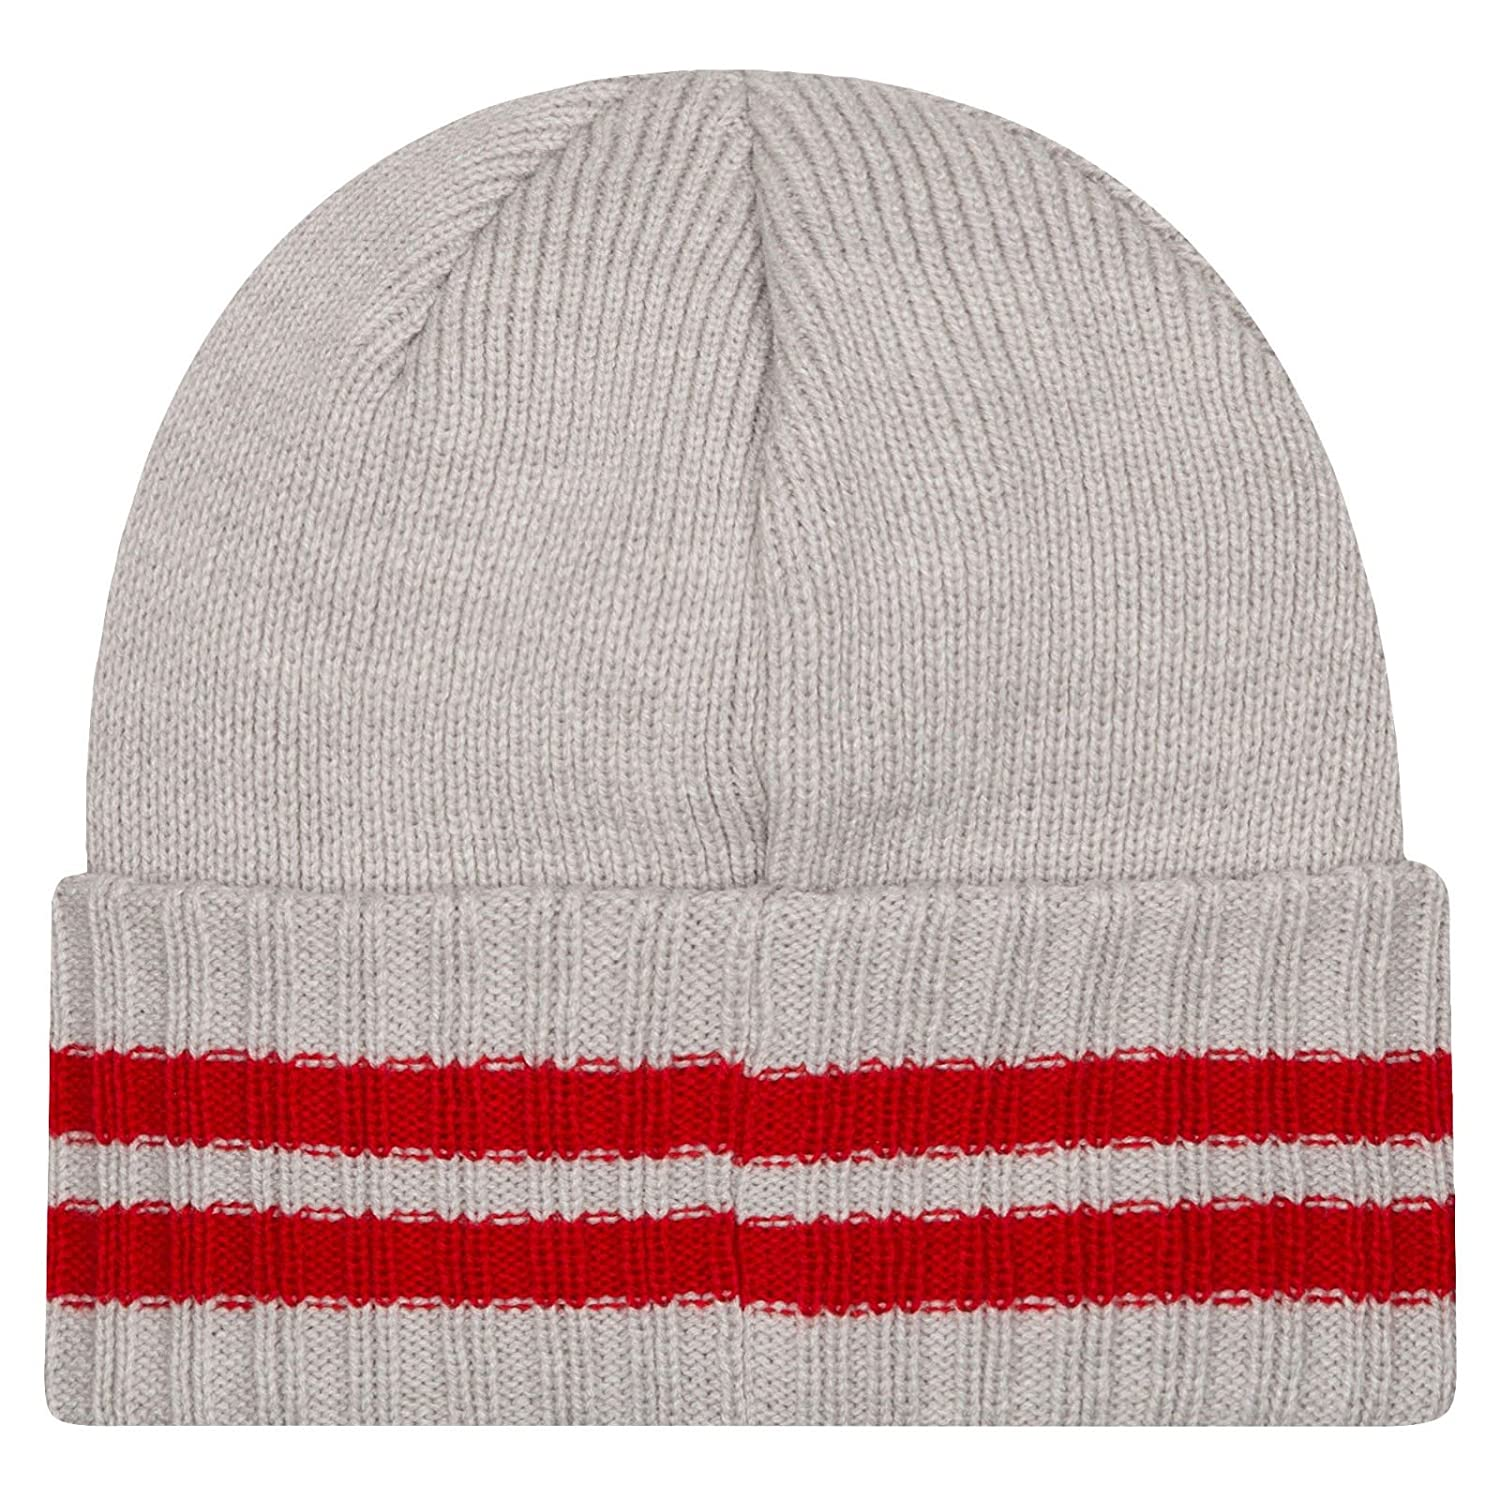 Amazon.com  New Era Kid s Youth Chicago Bulls Windy City 2 Striped Cuffed  Knit Beanie Grey Red  Clothing 8e190936db5